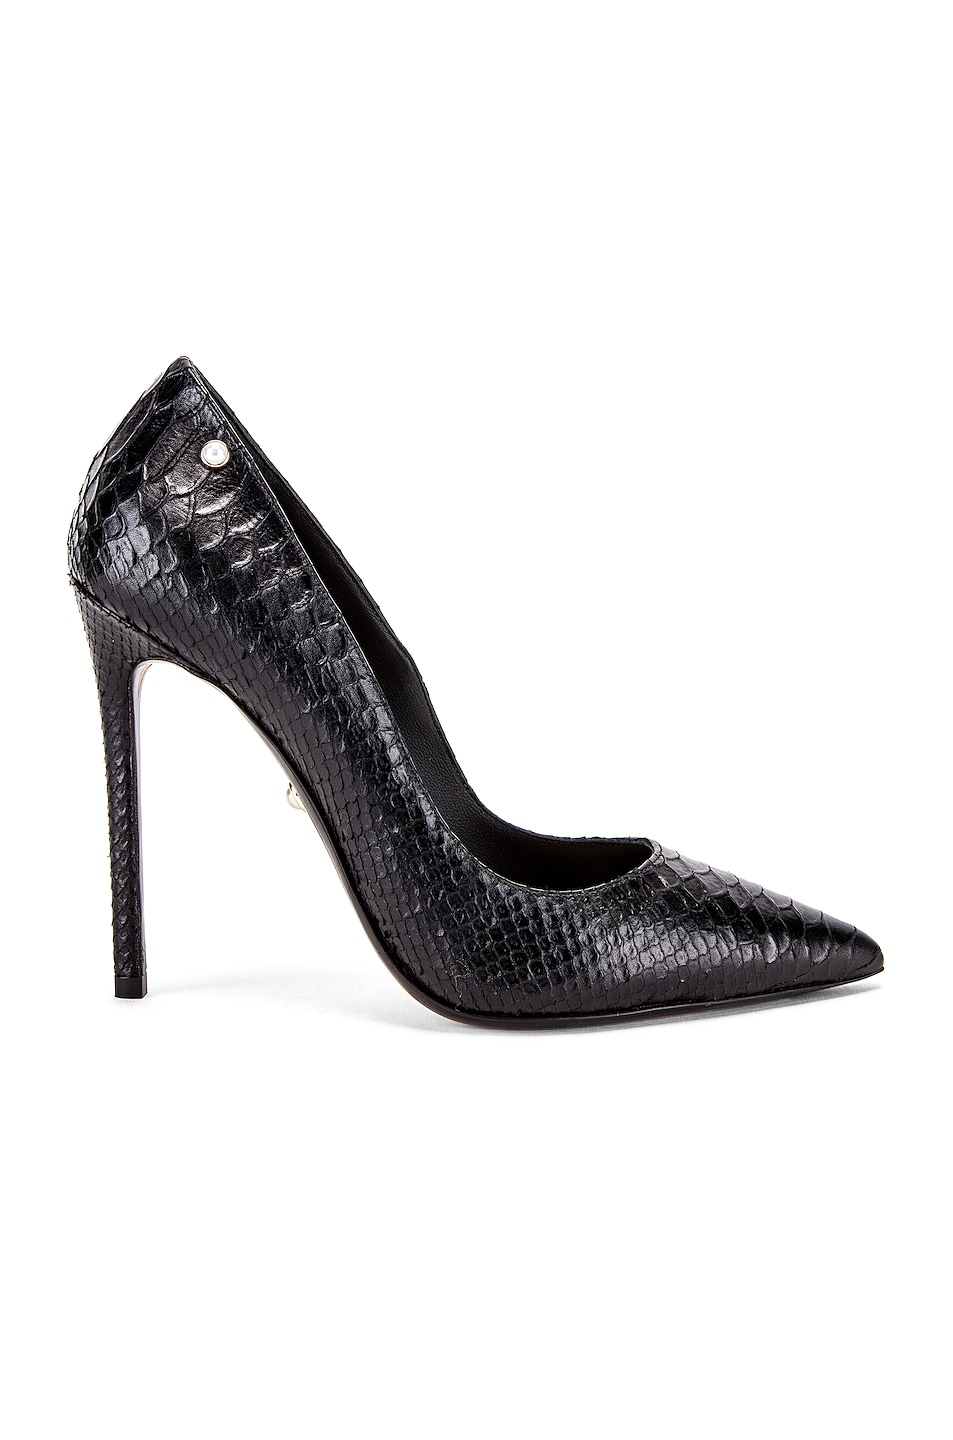 Image 1 of ALEVI Milano Alevi Carrie Pump in Black Snake